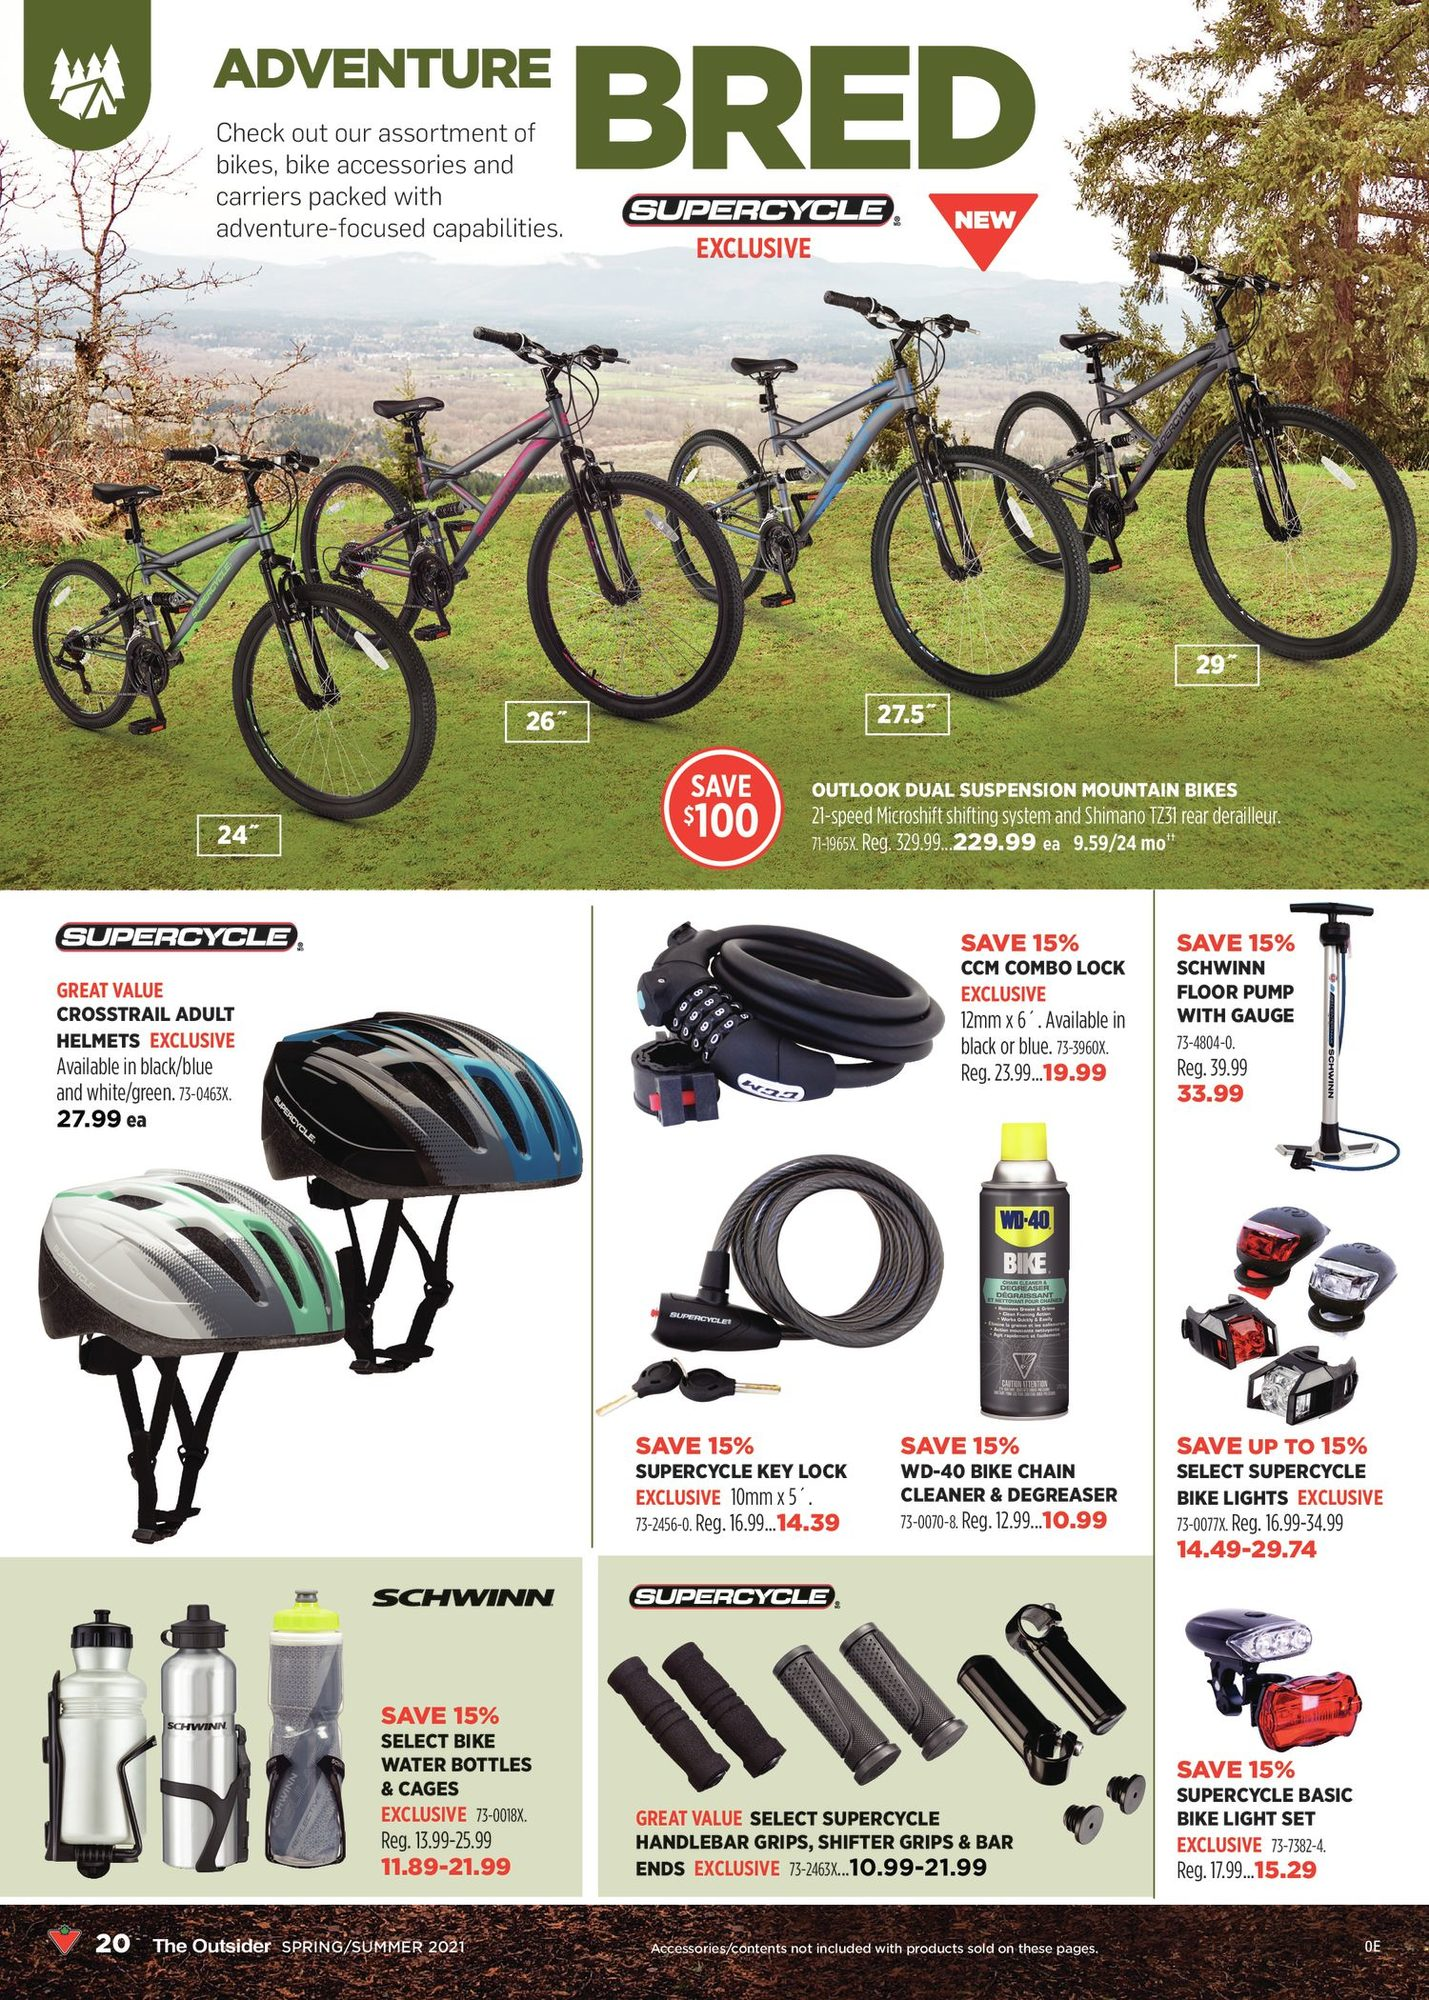 Canadian Tire - The Outsider - Spring/Summer 2021 - Page 20